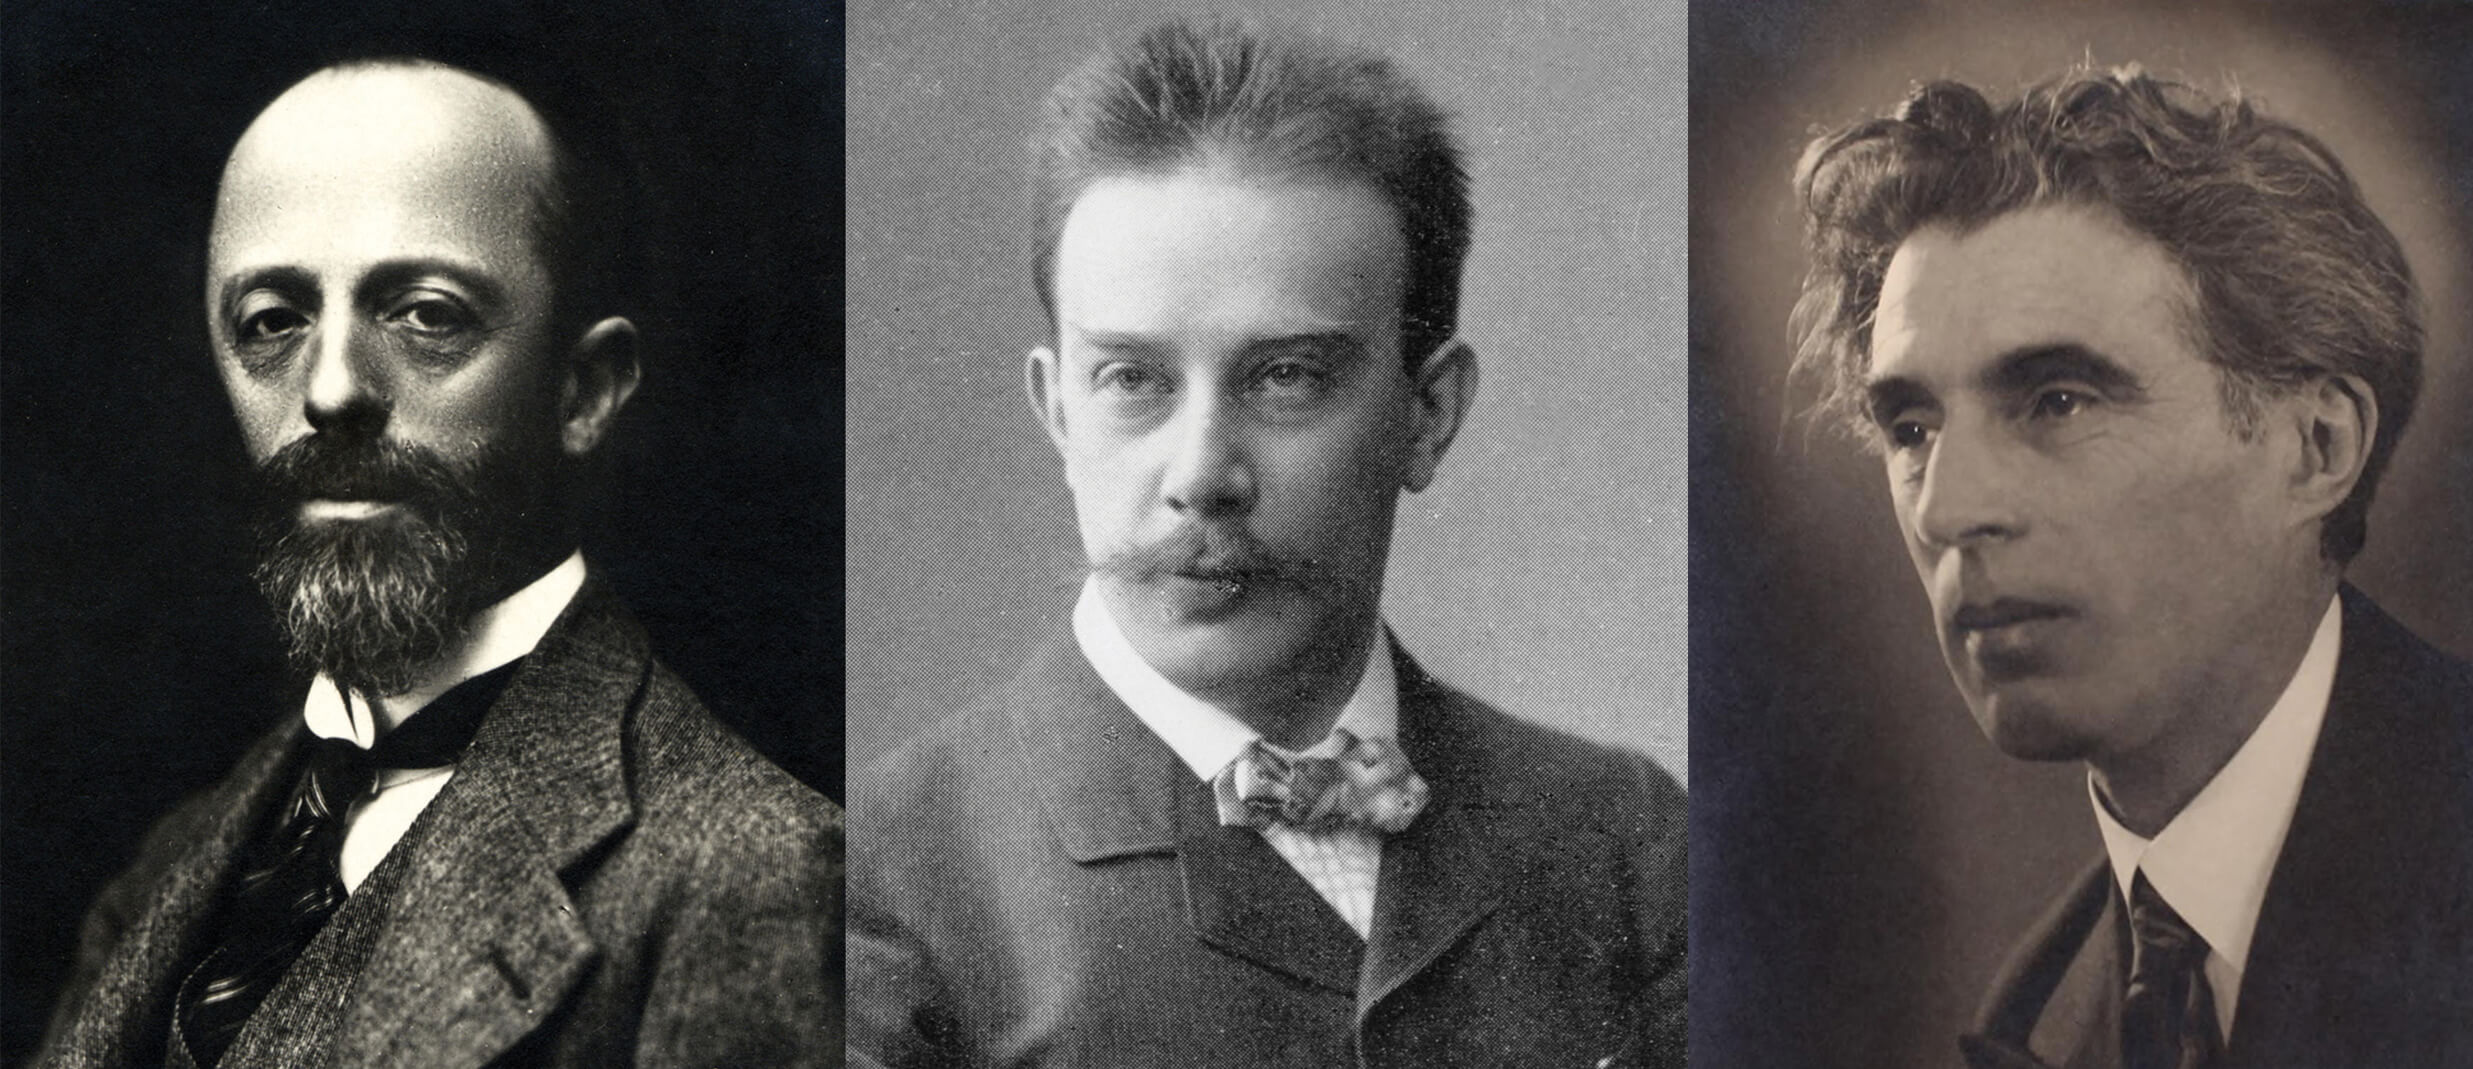 UMaine professor of music Phillip Silver has recovered and recorded lost works of Italian-Jewish composer Leone Sinigaglia, left, and German-Jewish composer Bernhard Sekles, whom historians credit with the birth of jazz as an academic subject.